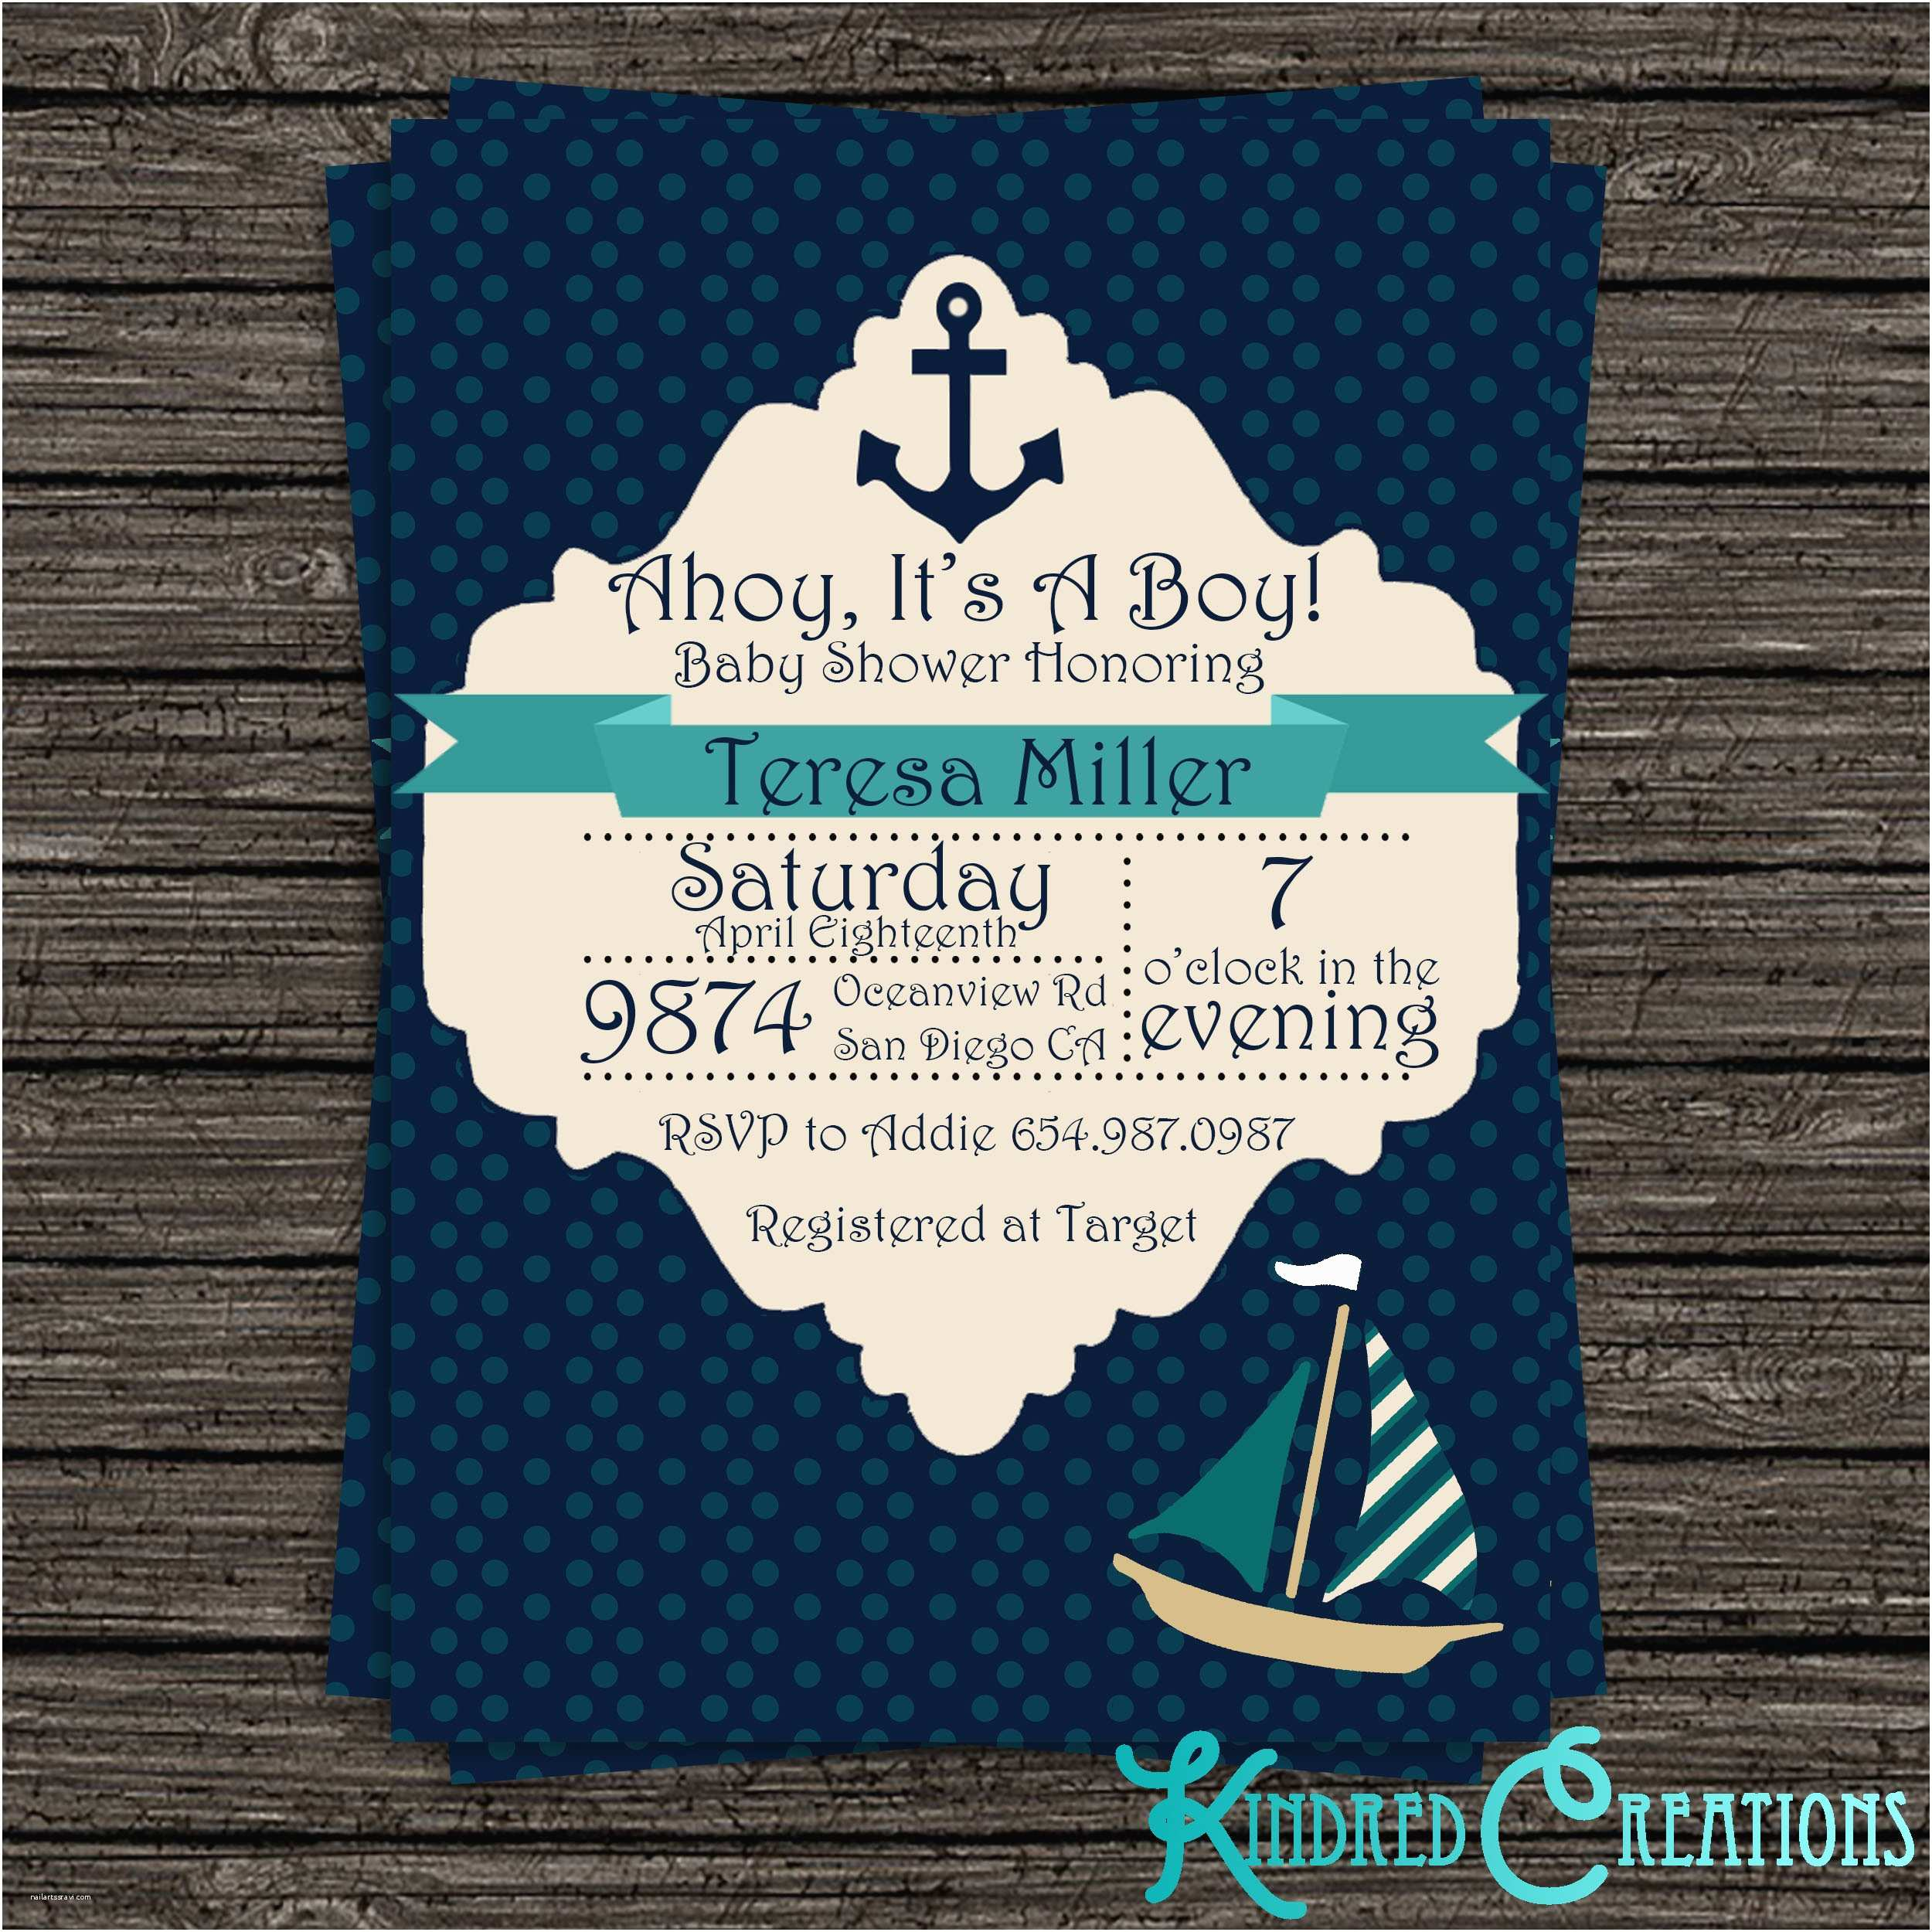 Baby Boy Shower Invitations Blog Kindred Creations